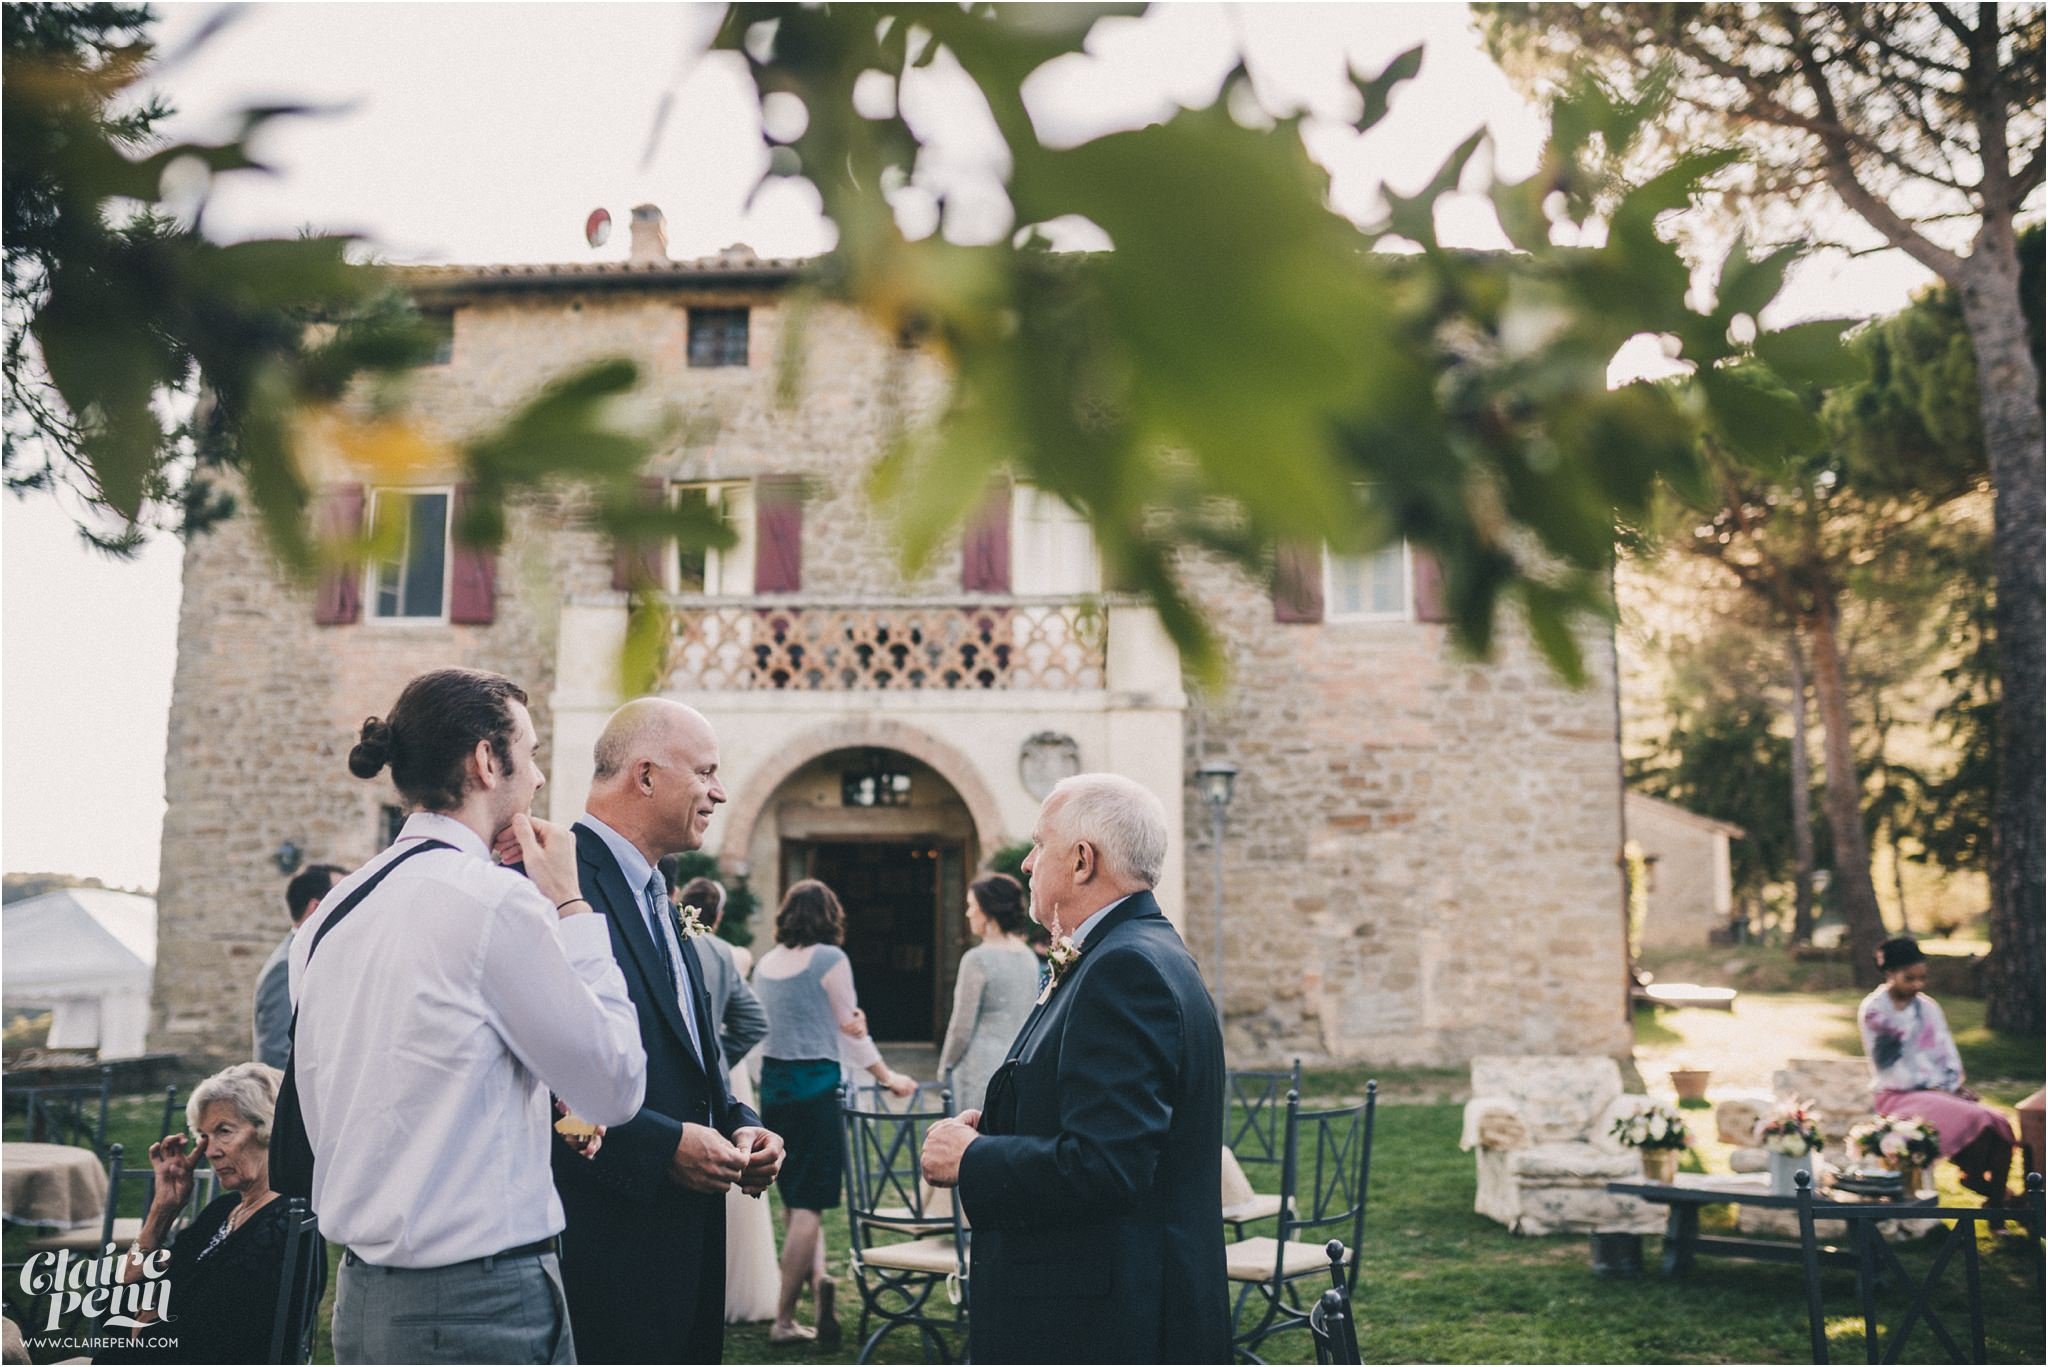 Umbria destination wedding Italy Casa Bruciata 00058.jpg